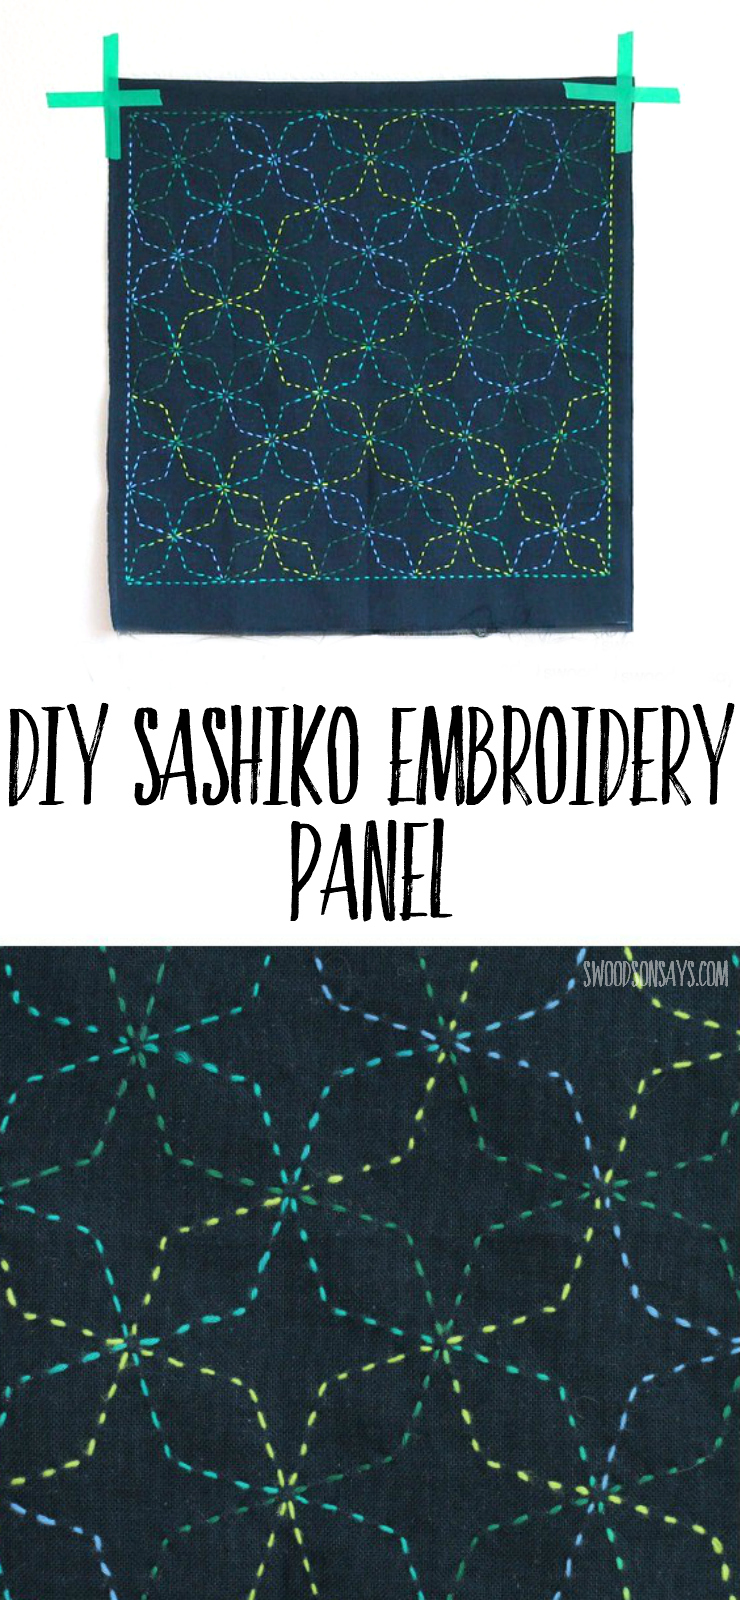 Looking for an embroidery project for beginners? Sashiko is a really simple, fun way to stitch and this shows a preprinted panel that was stitched up sashiko style.